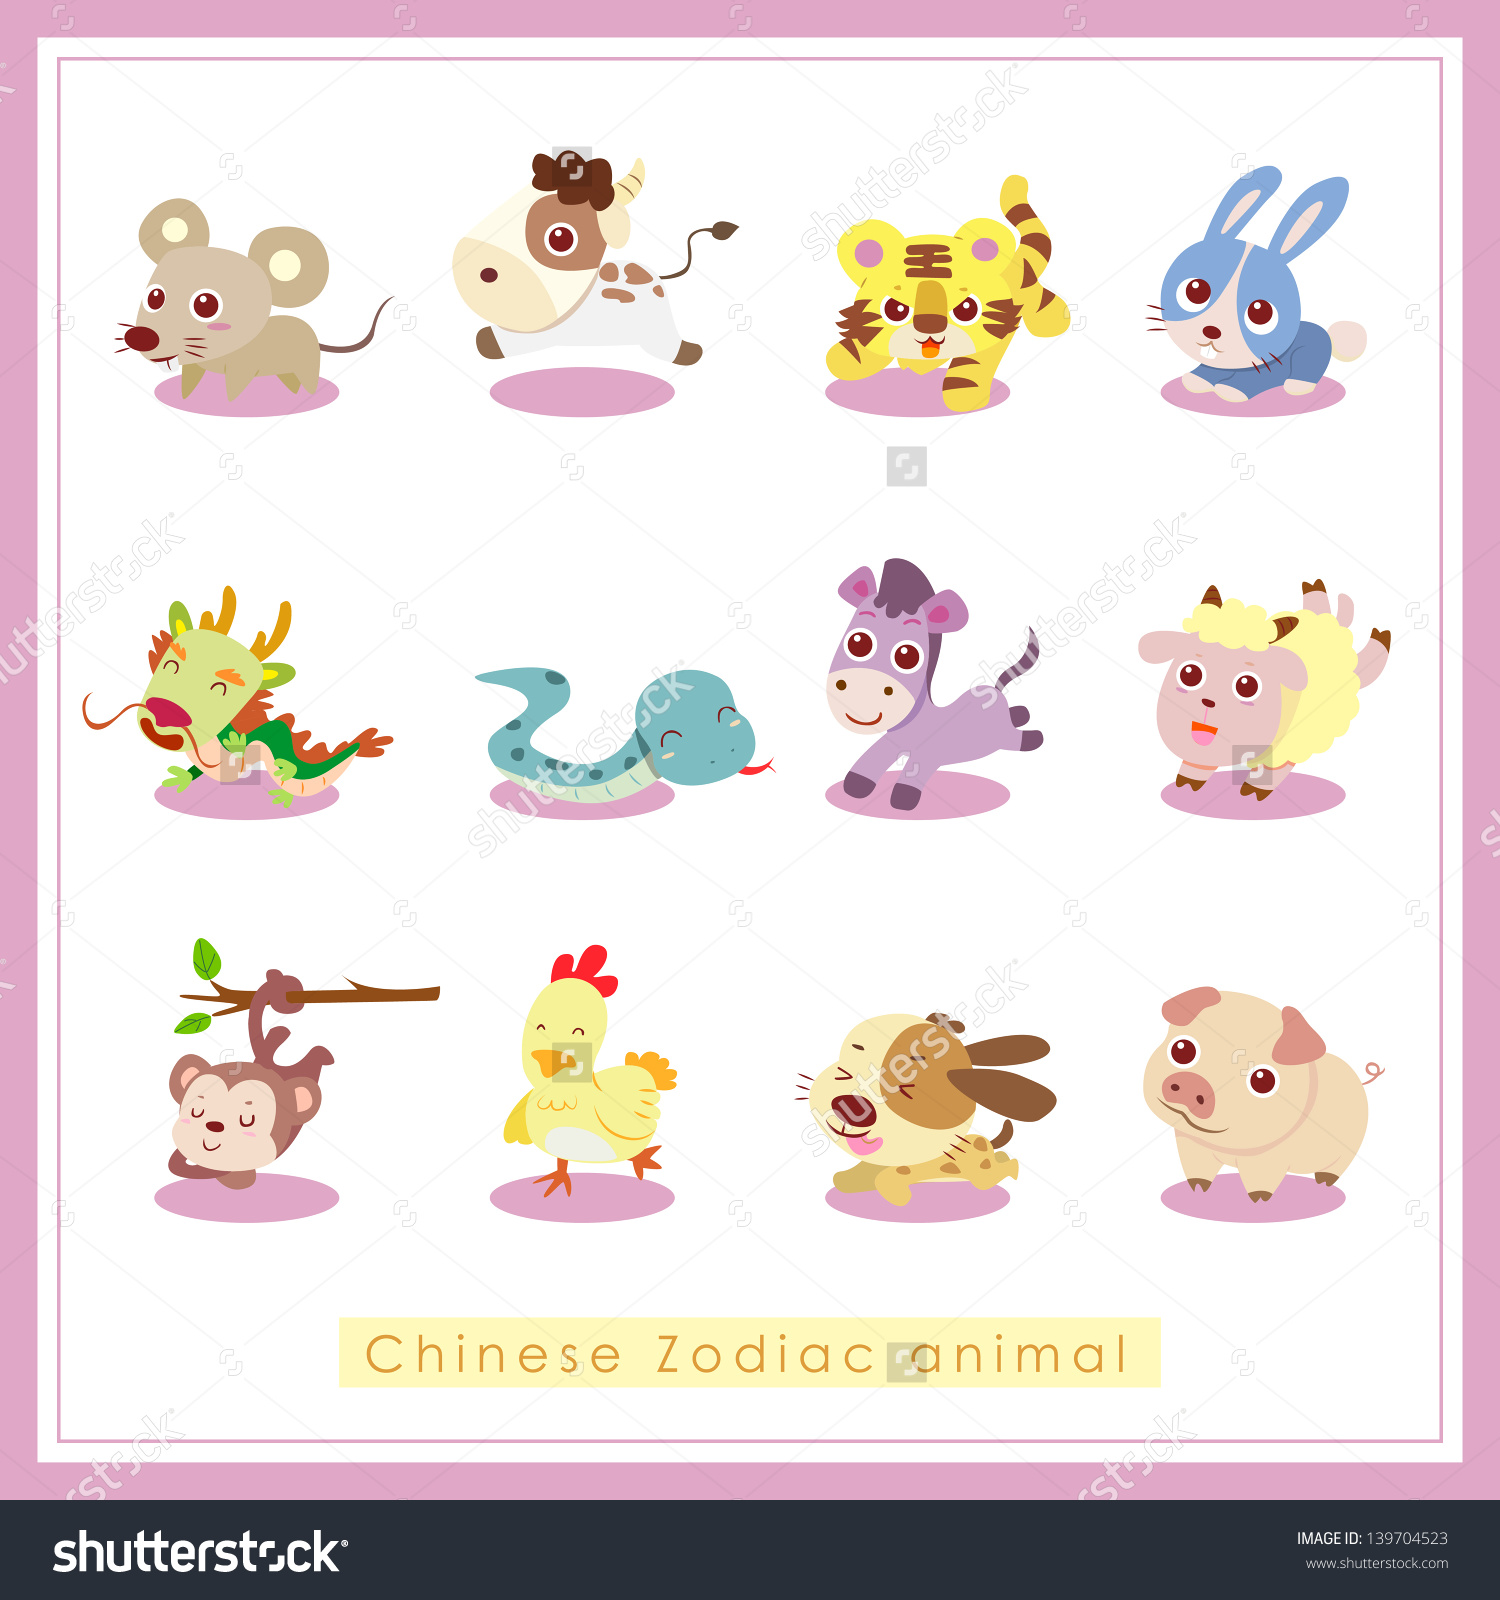 cartoon animal stickers in - photo #10